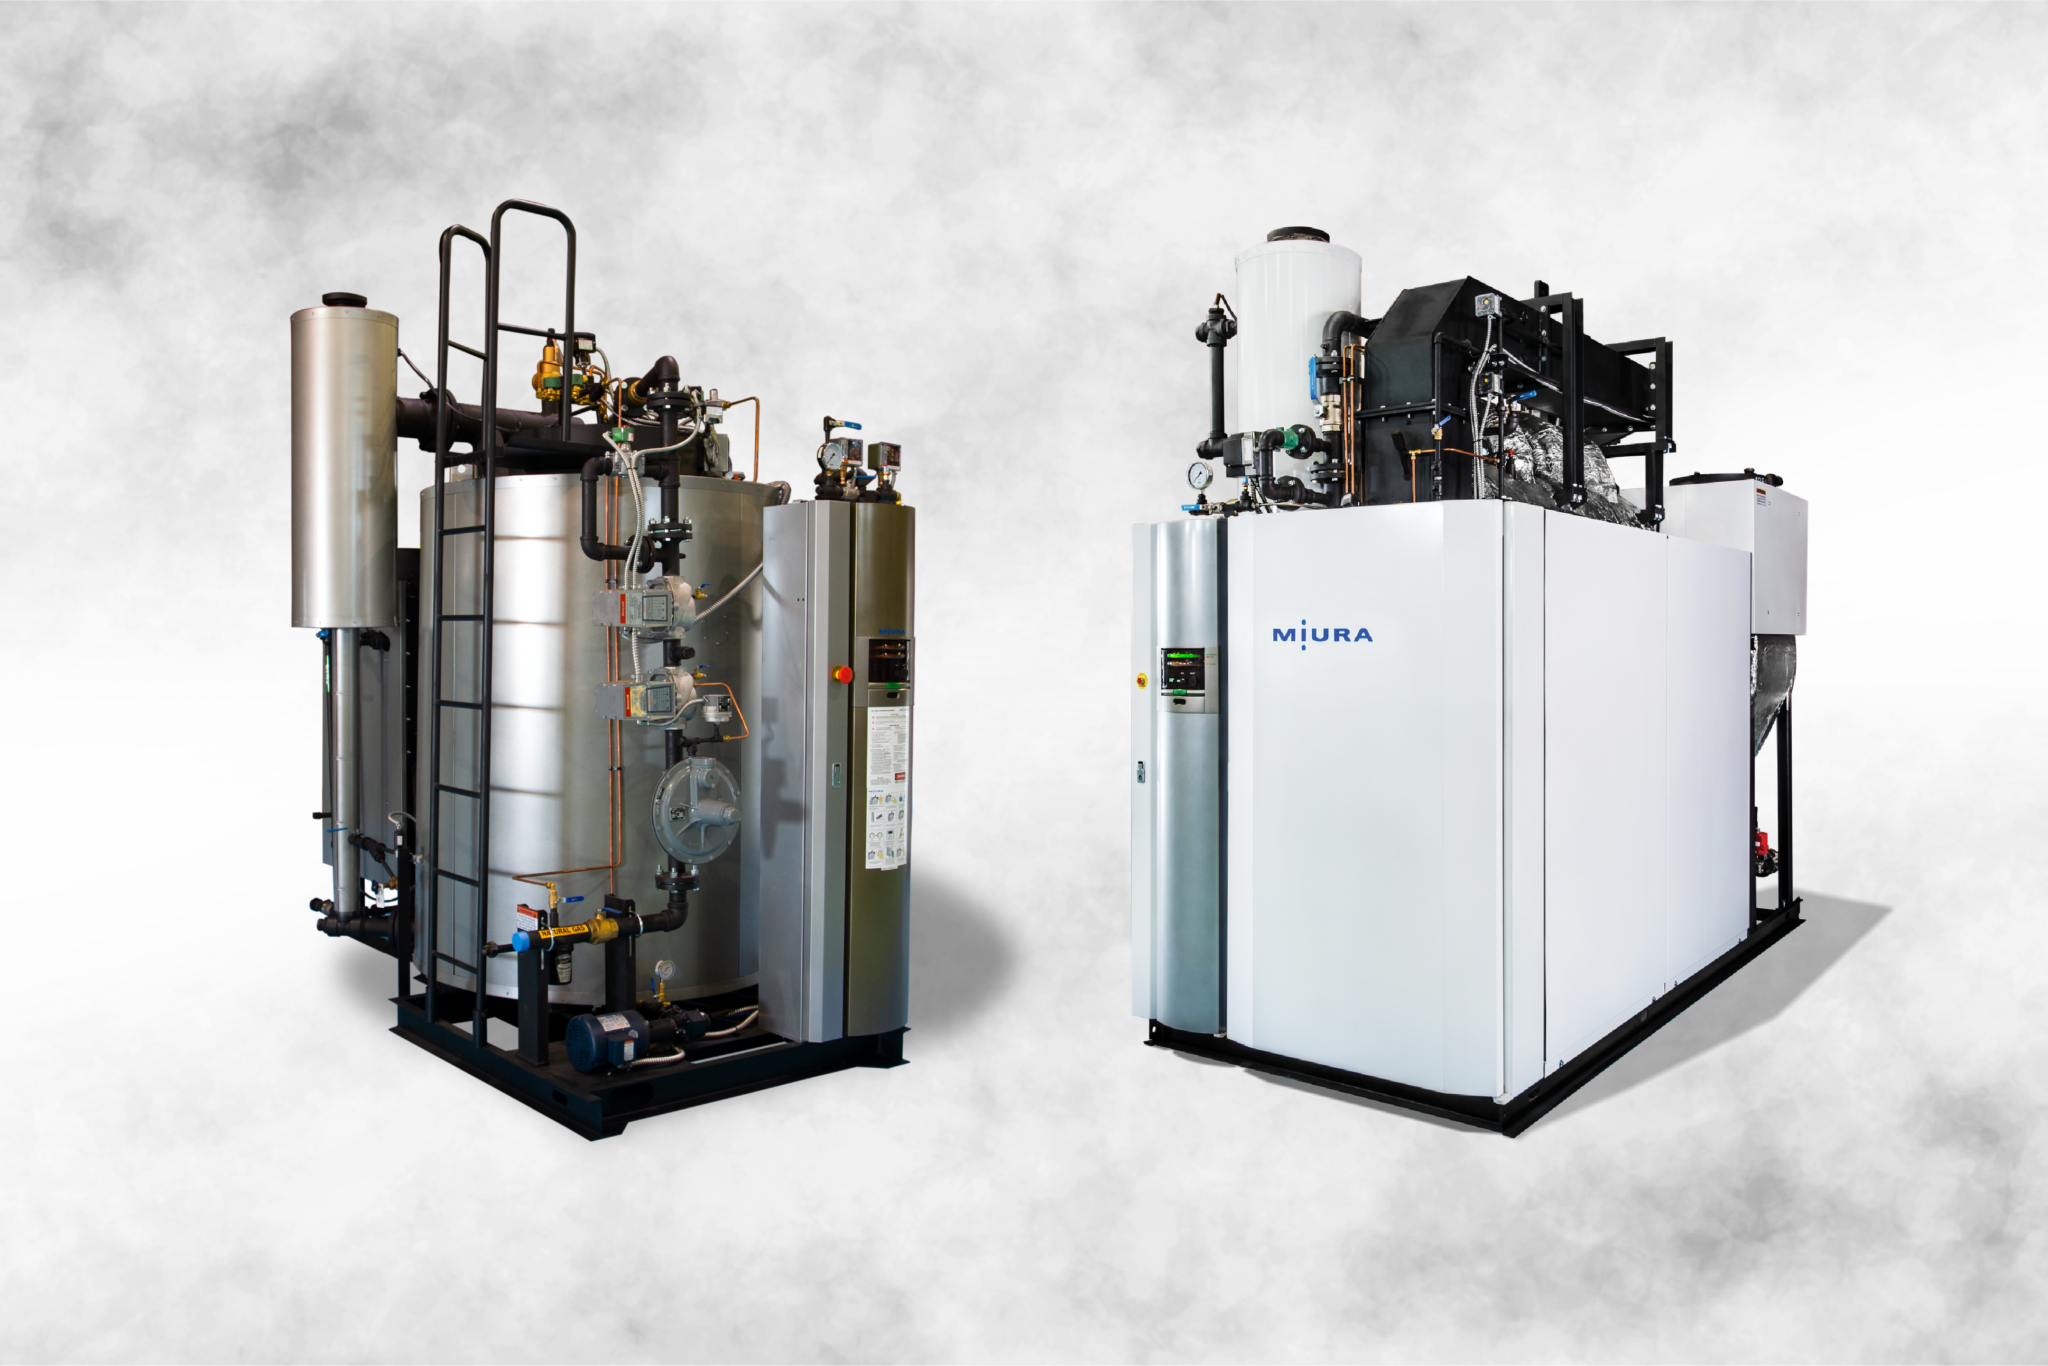 FUJIFILM Hunt Chemicals Reduces Energy Footprint with Miura Boilers